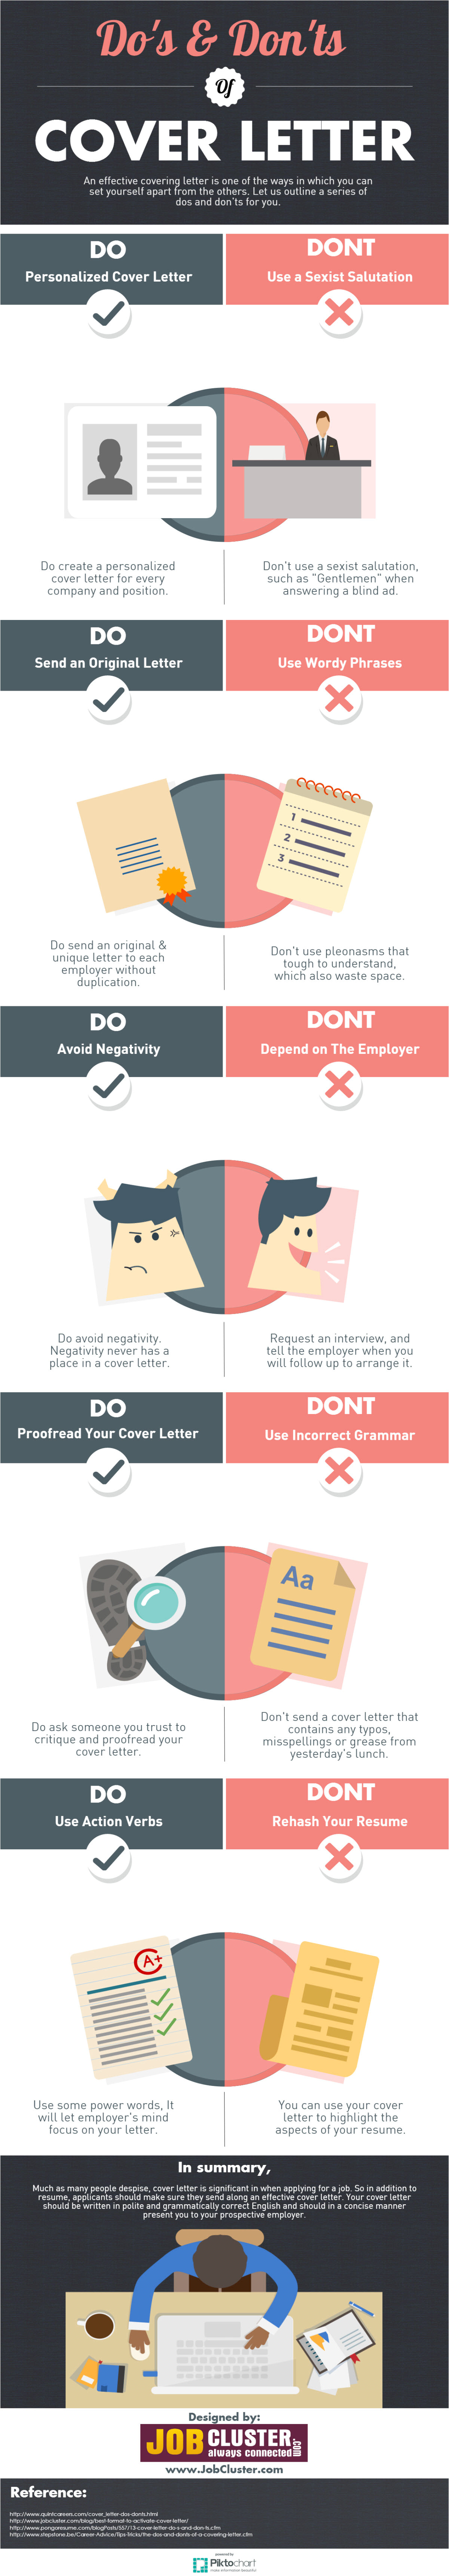 cover letter dos and donts infographic